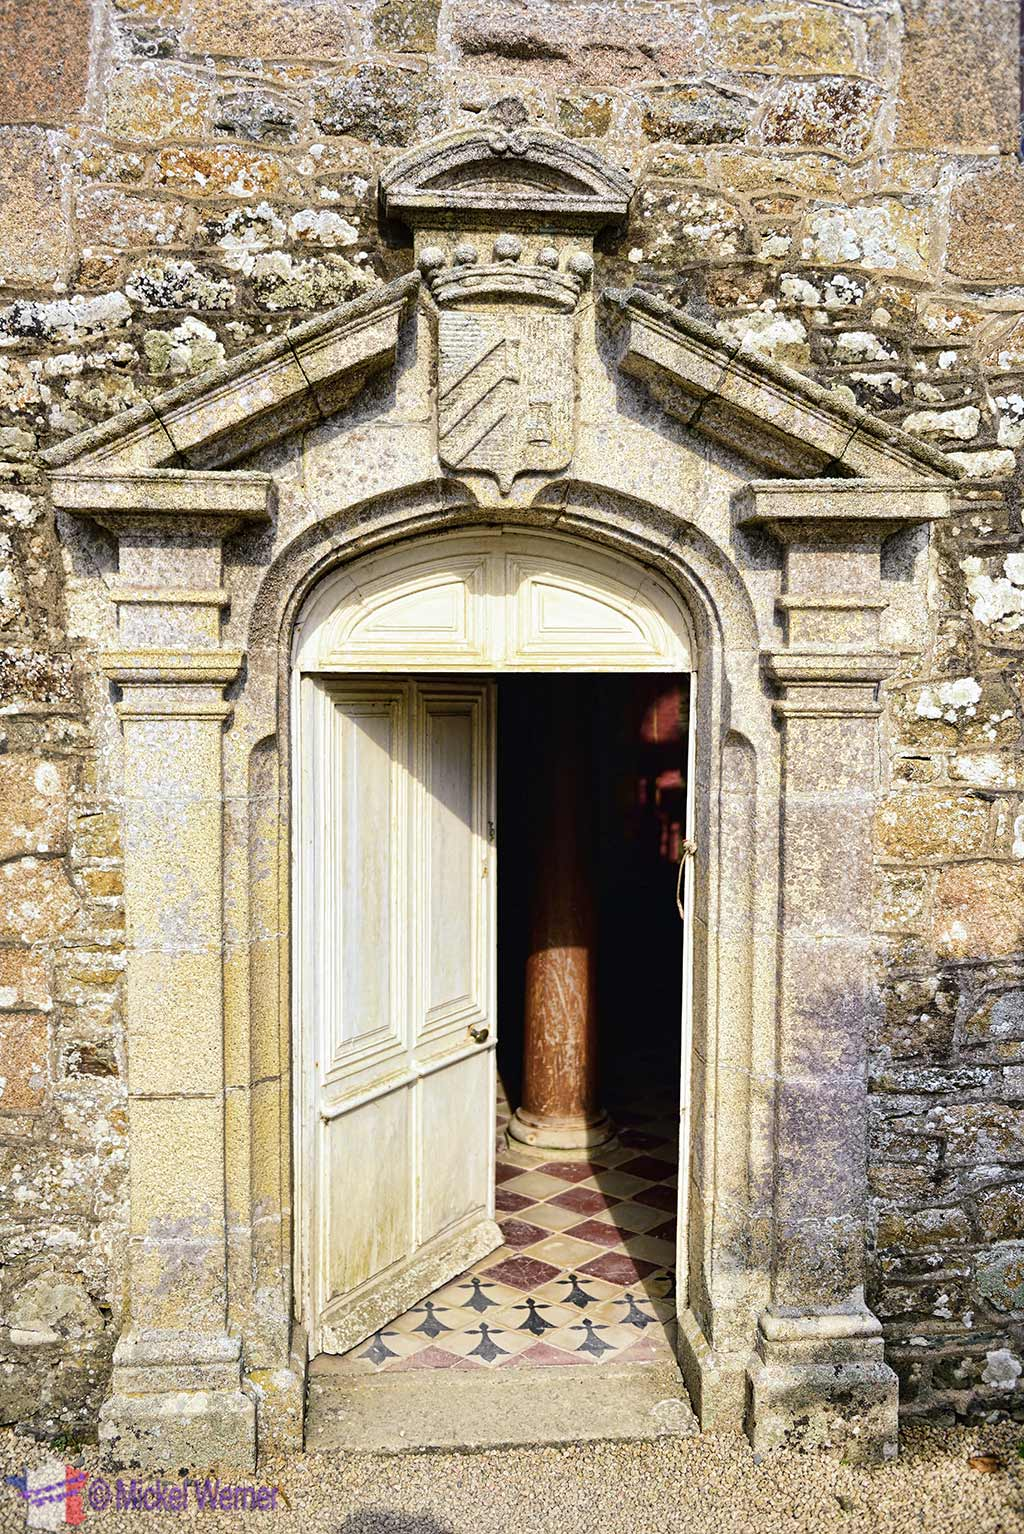 Door of the Chapel at the Chateau de Kerduel in Pleumeur-Bodou, Brittany